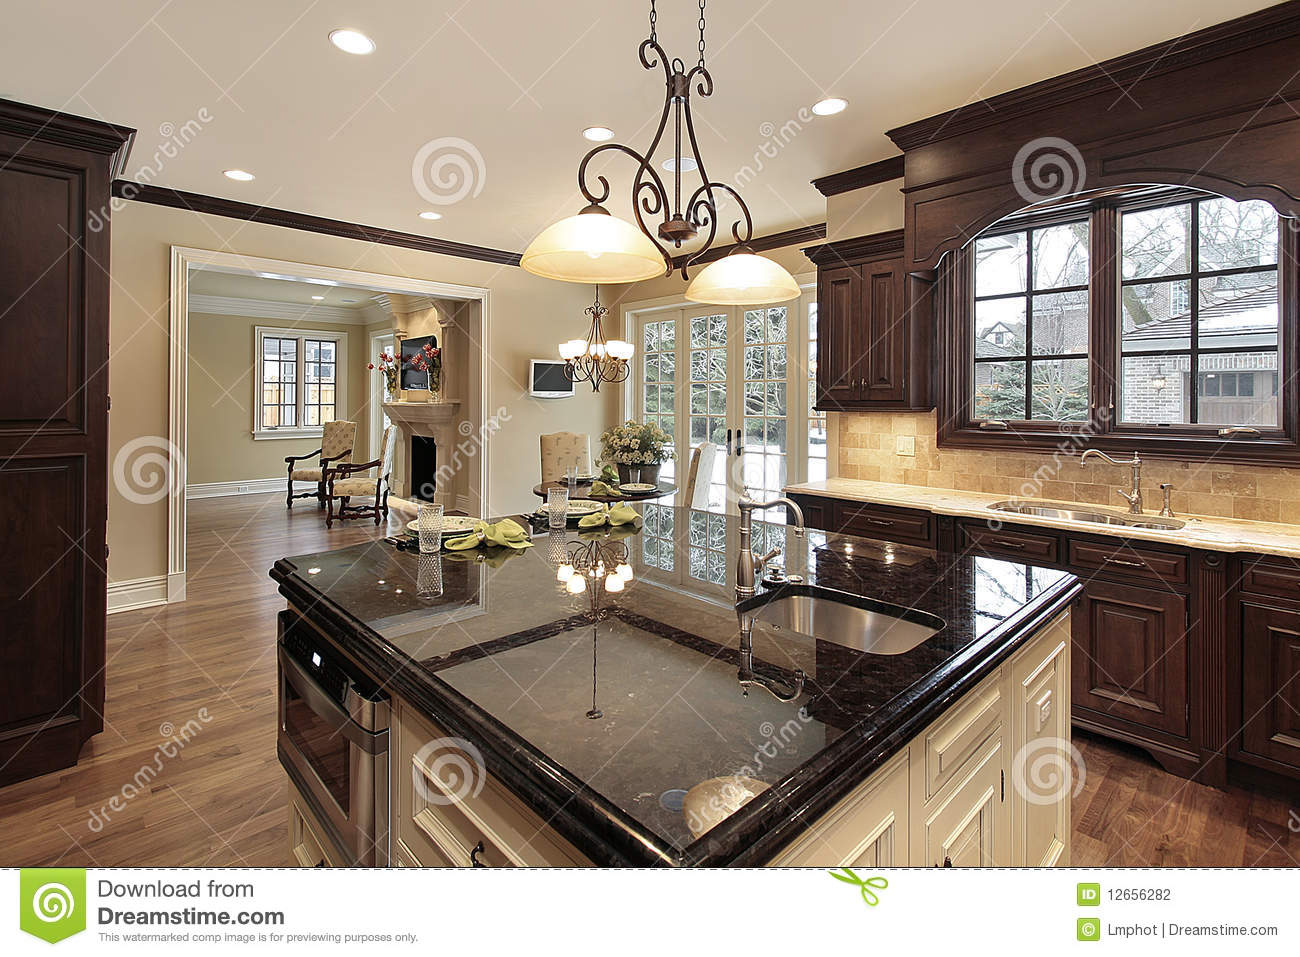 How Big Of Kitchen For An Island